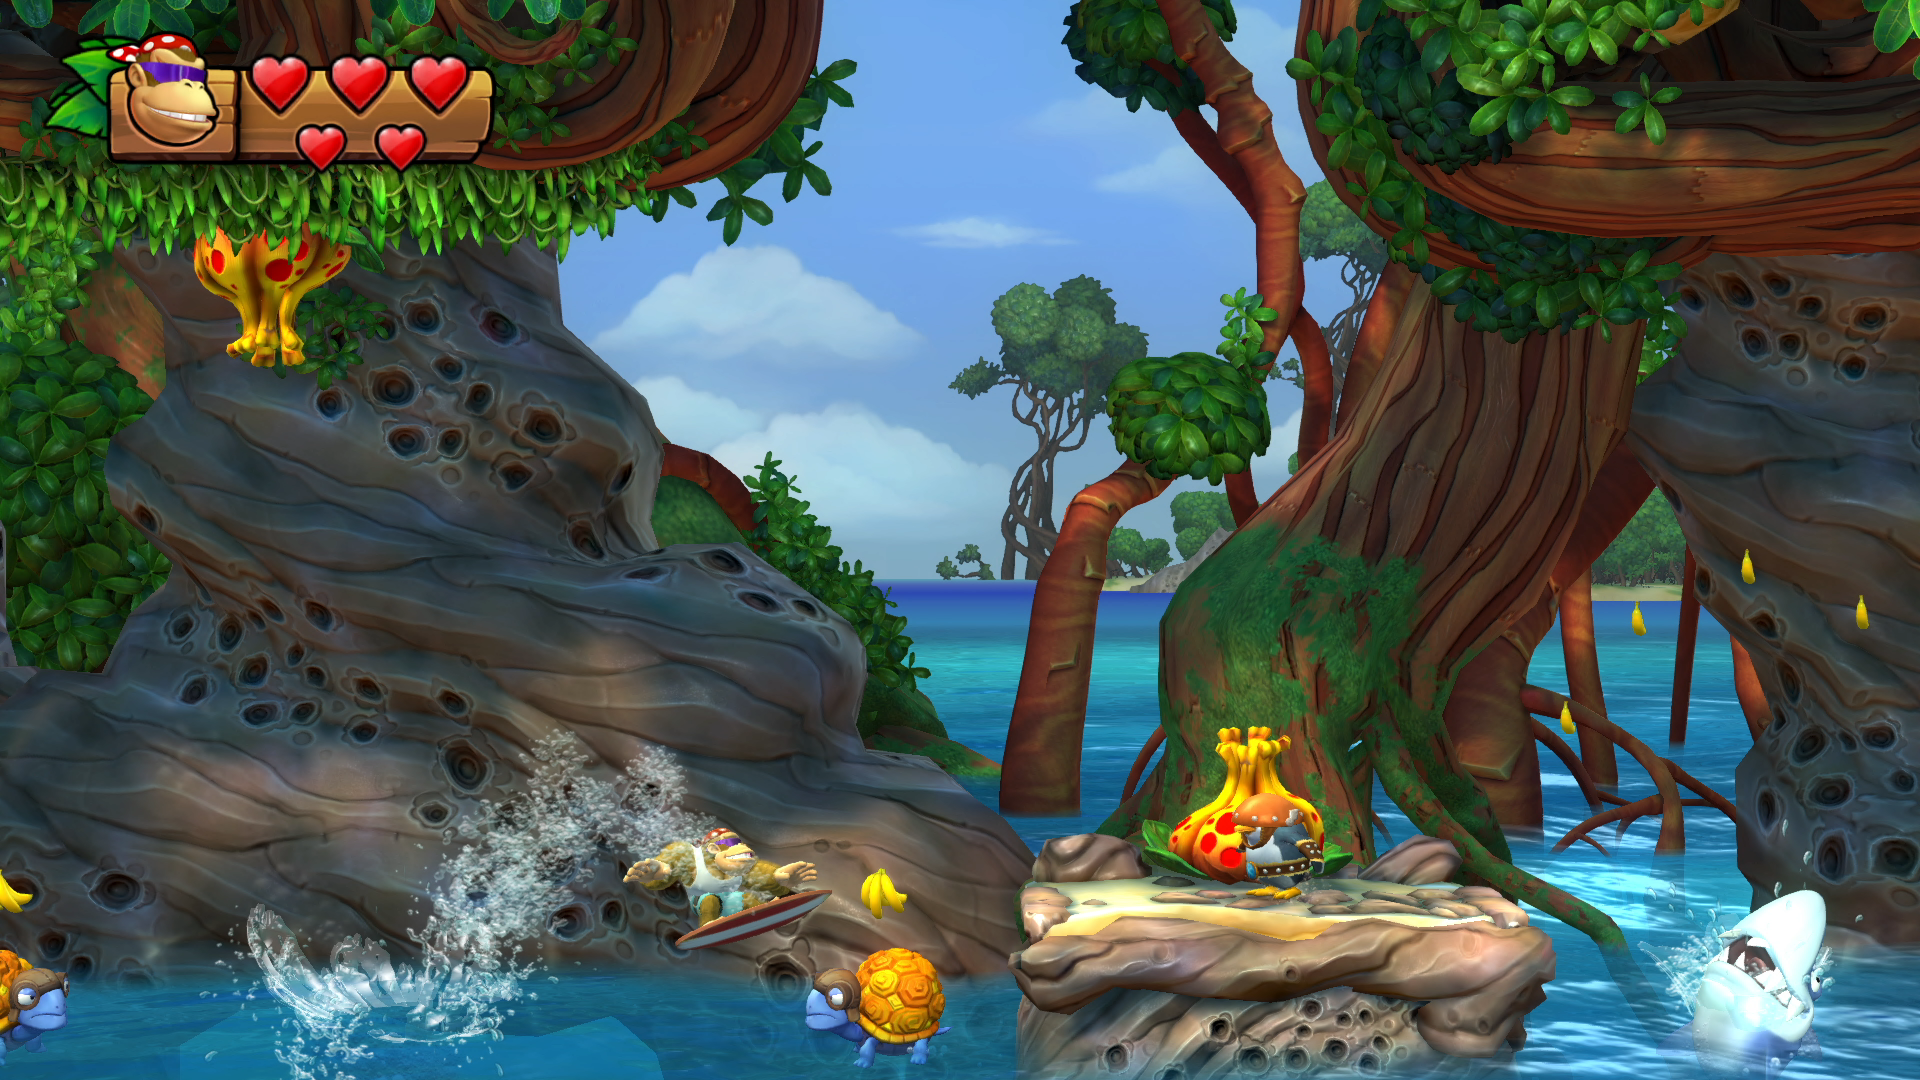 Did You Know Gaming? Takes A Look At Donkey Kong Country